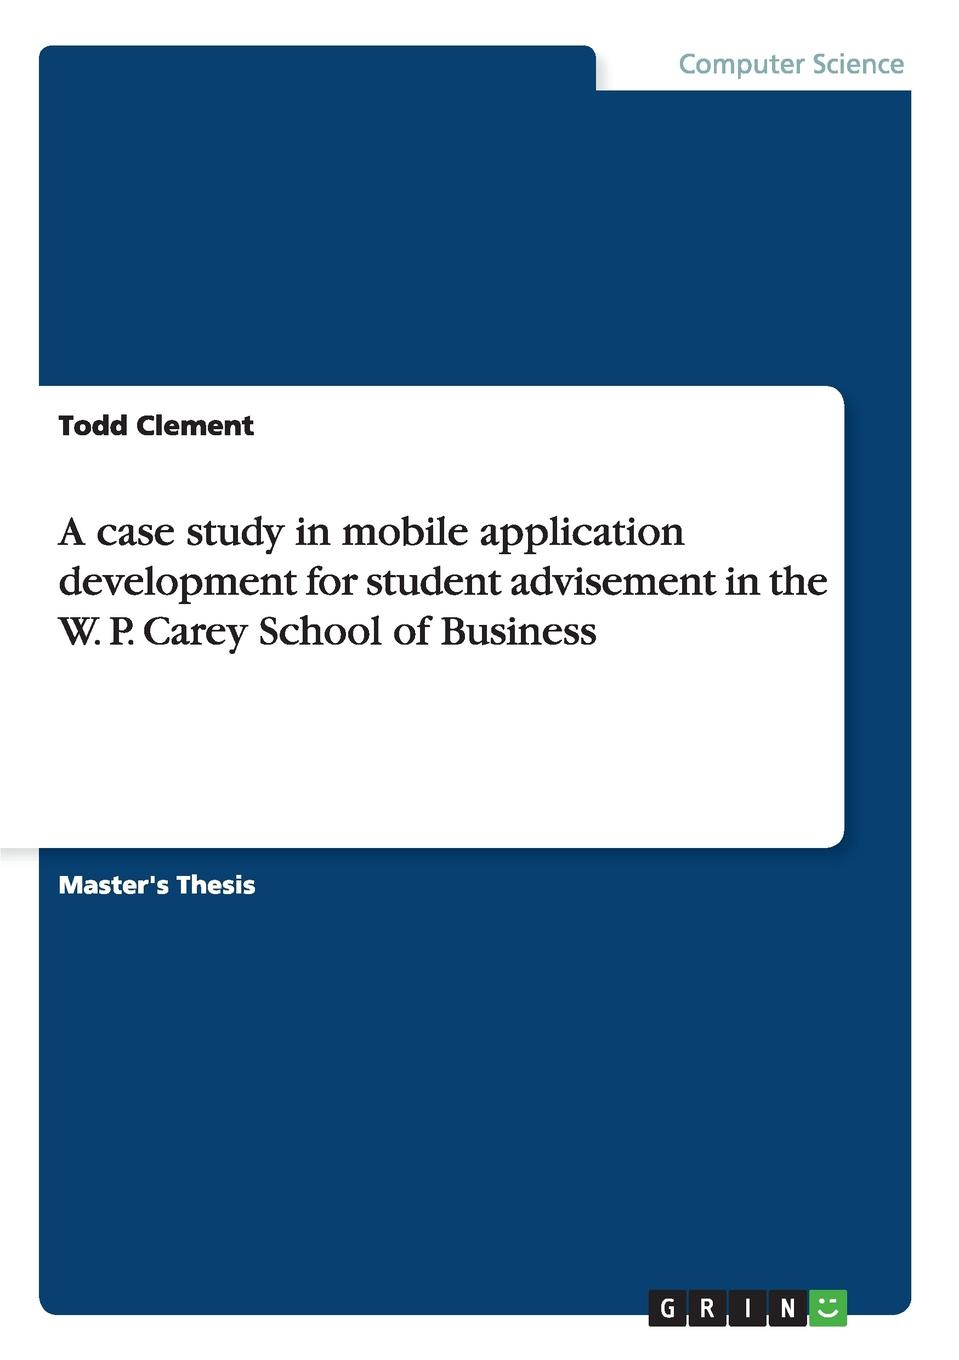 Todd Clement A Case Study in Mobile Application Development for Student Advisement in the W. P. Carey School of Business professional meego application development